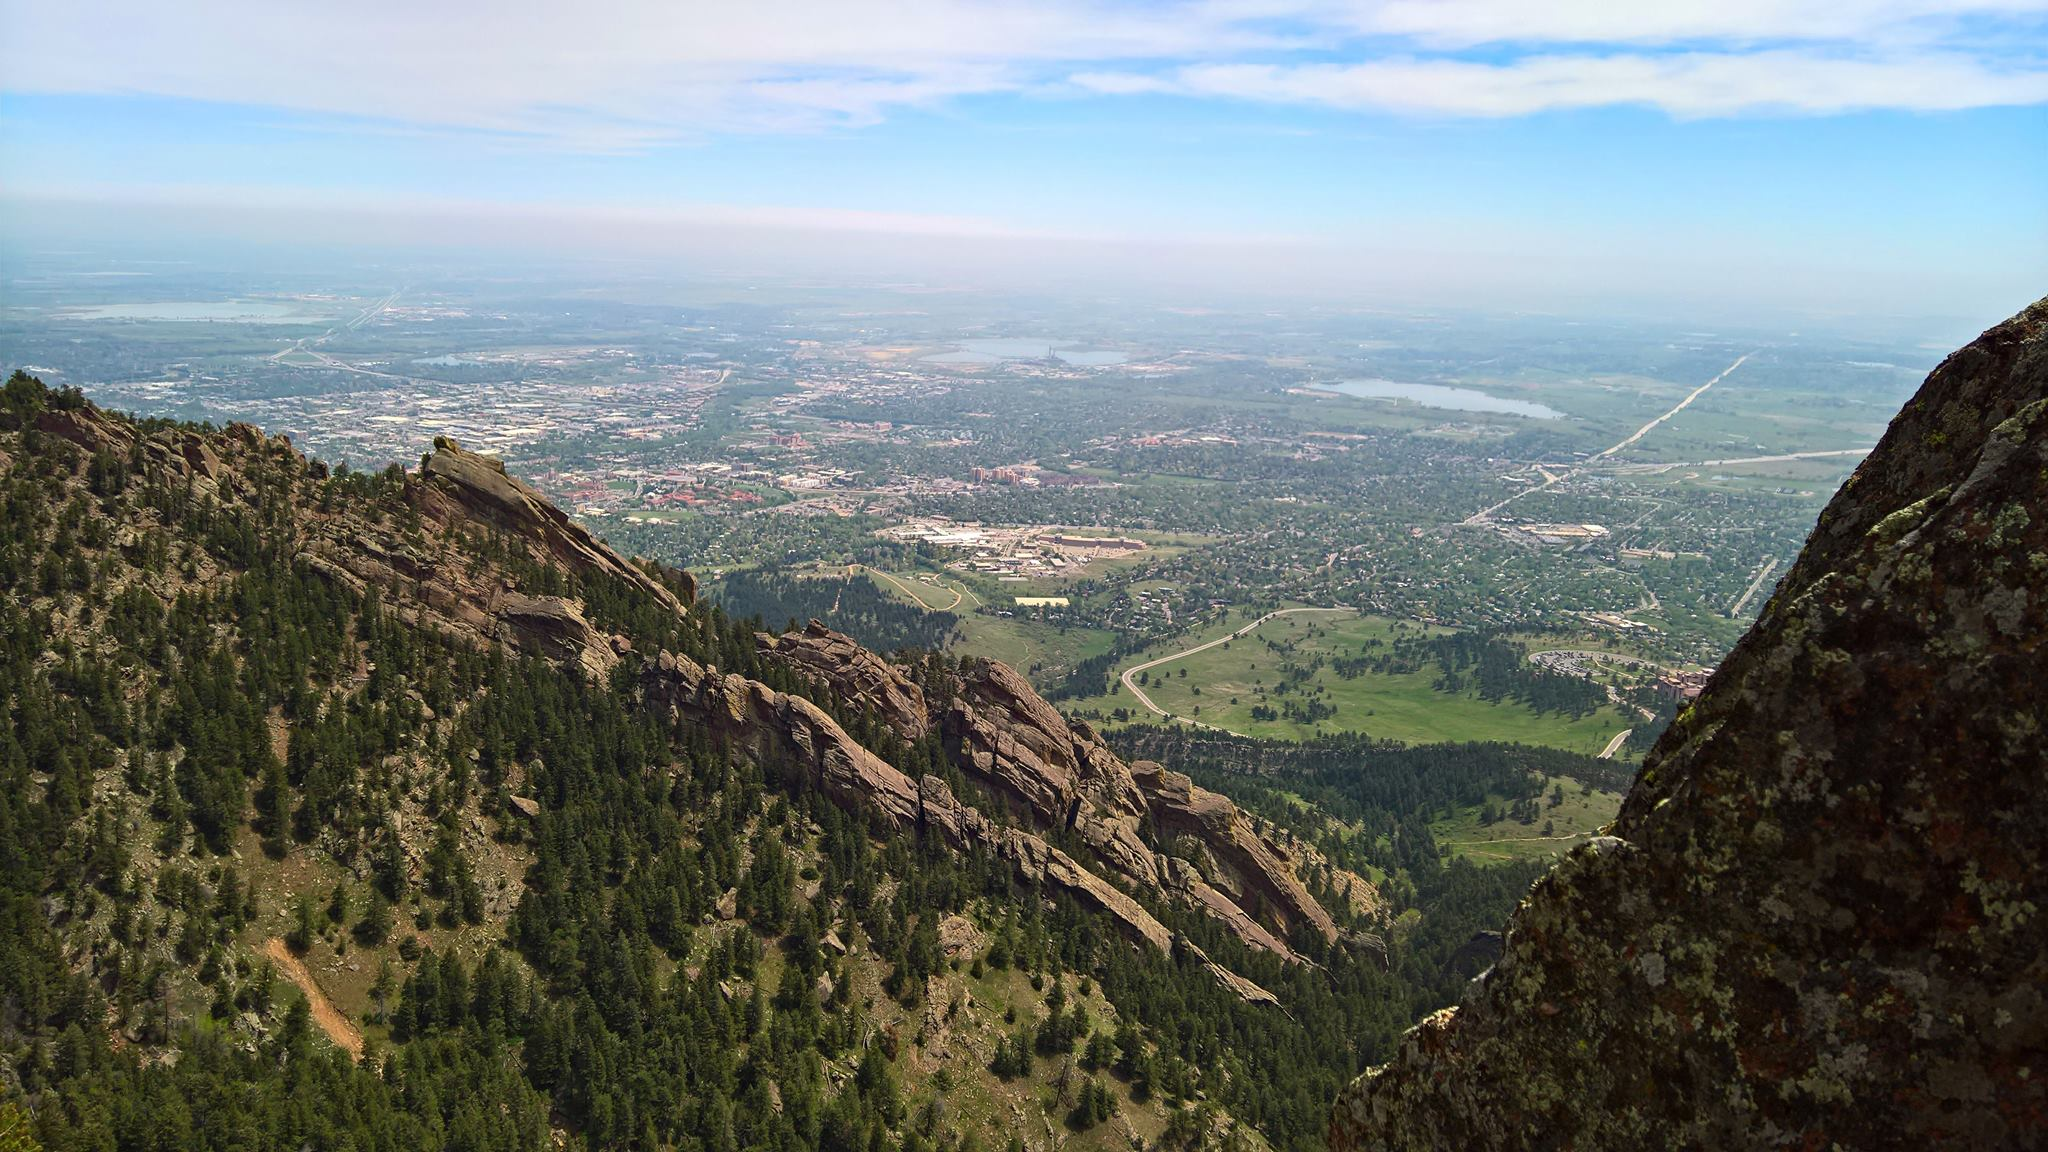 Sunshine was plentiful on Saturday, great for climbing the Flatirons